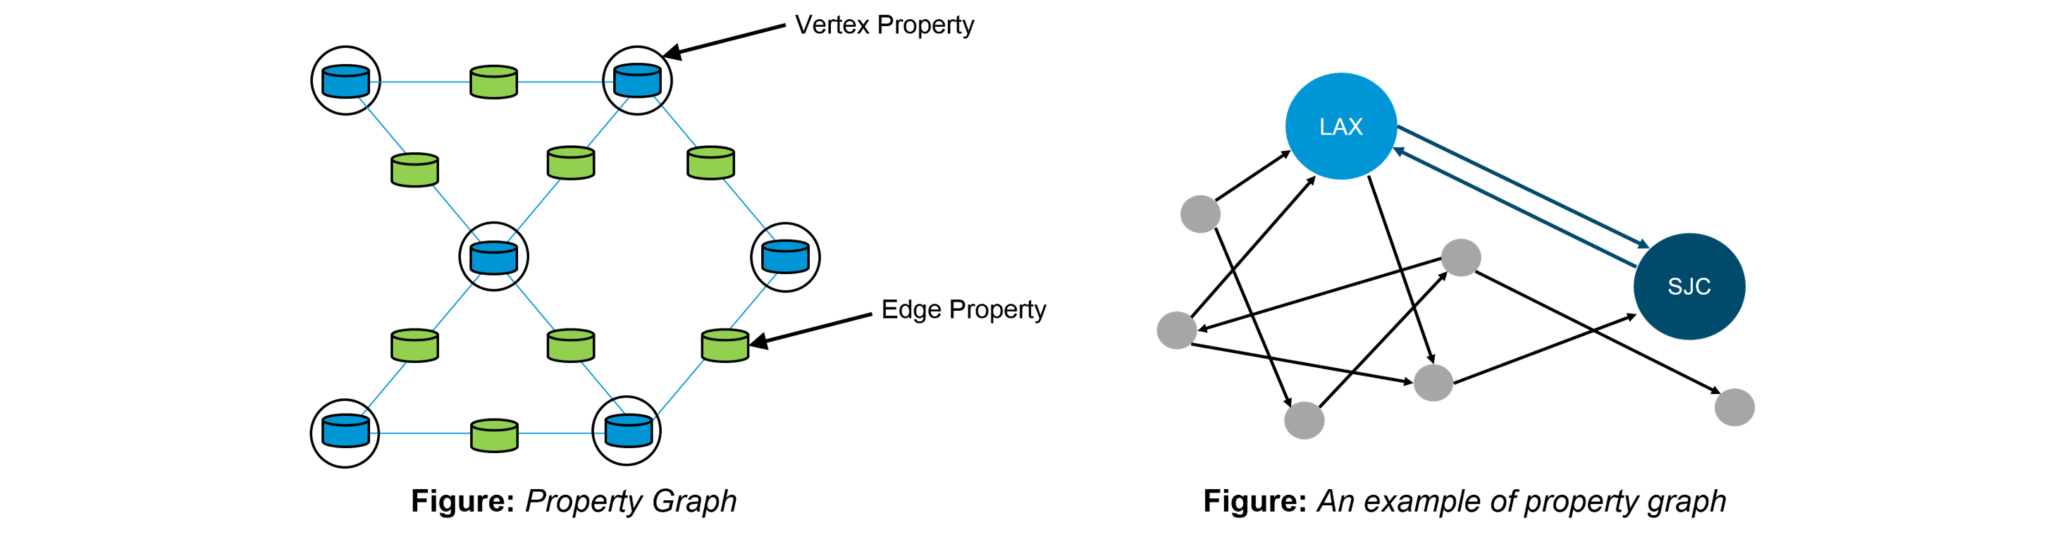 Spark graphx tutorial flight data analysis using spark graphx property graph spark graphx tutorial edureka baditri Gallery